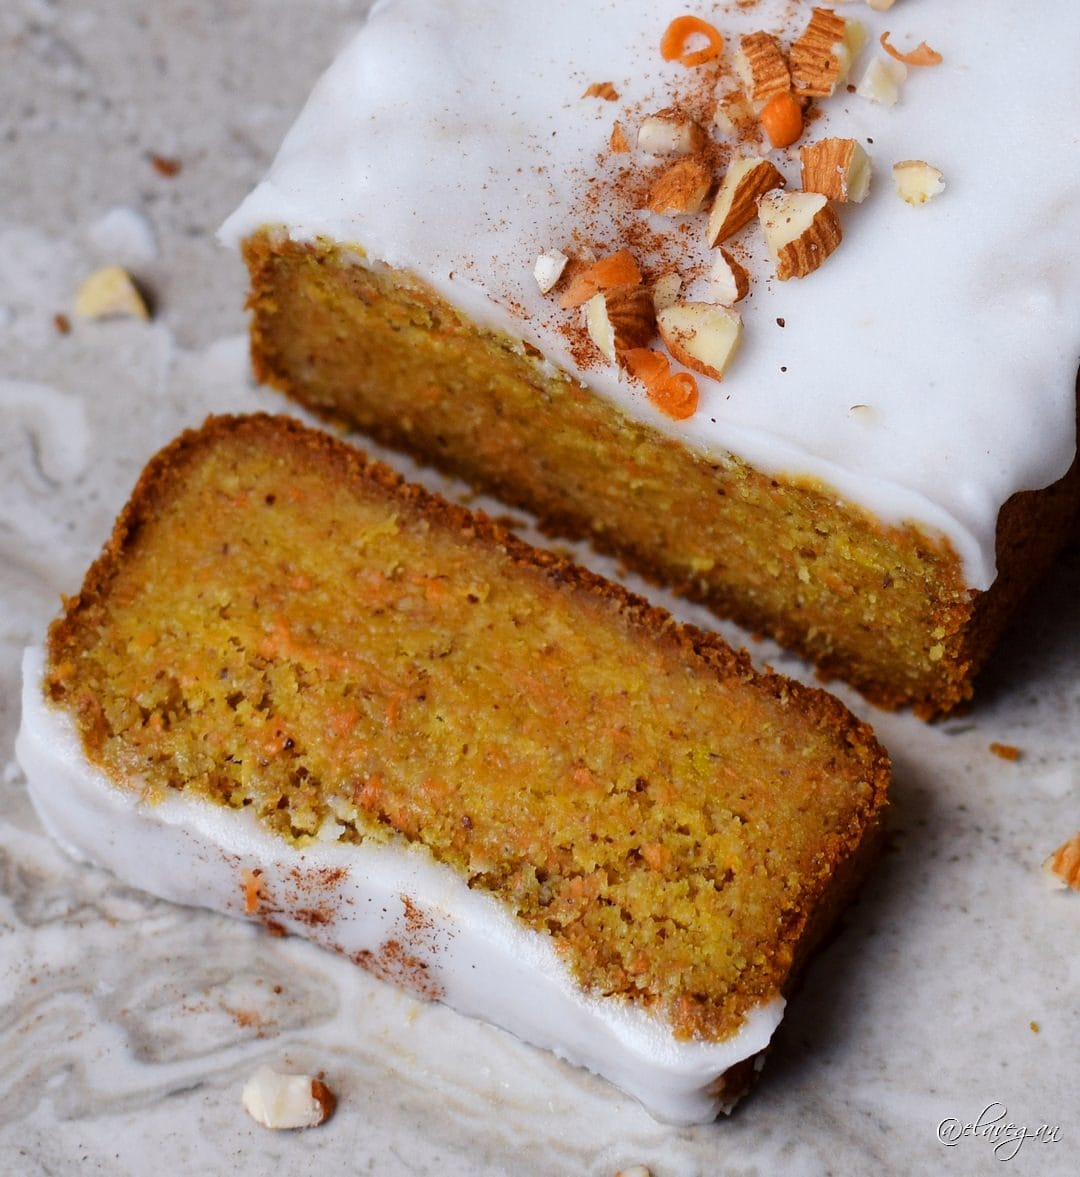 Gluten Free And Sugar Free Carrot Cake Recipe